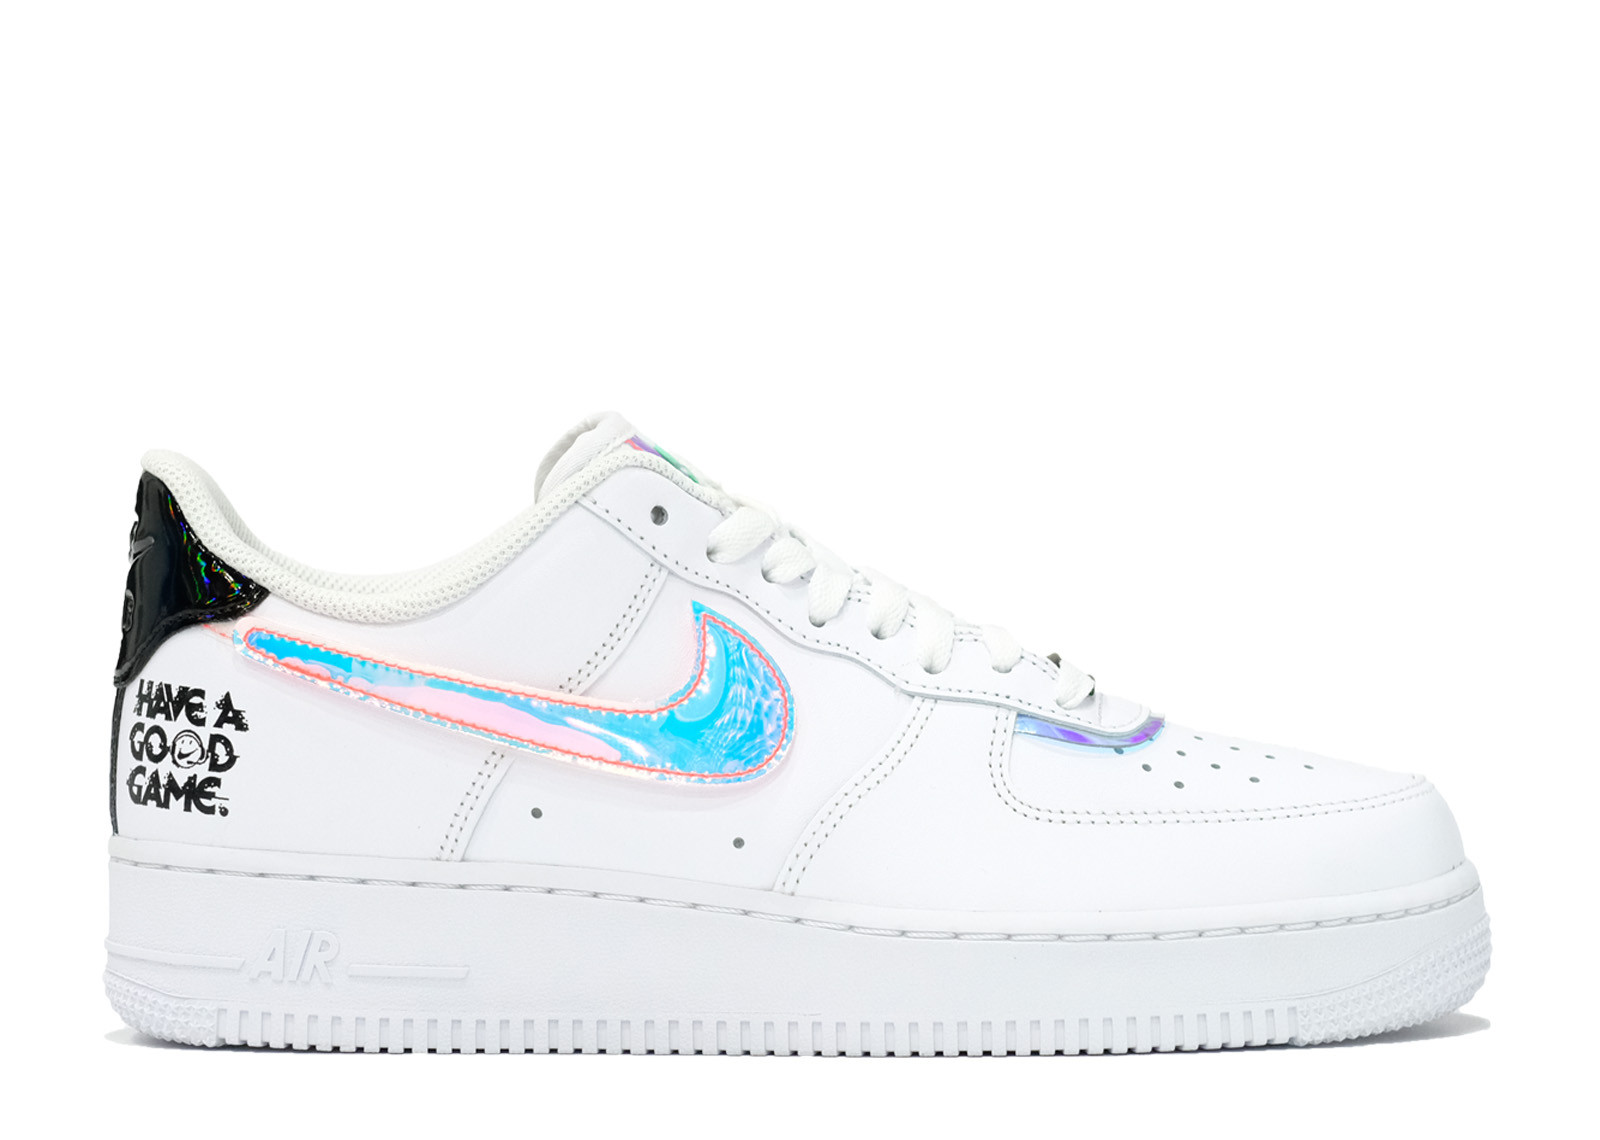 Nike Air Force 1 HAVE A GOOD GAME image 1